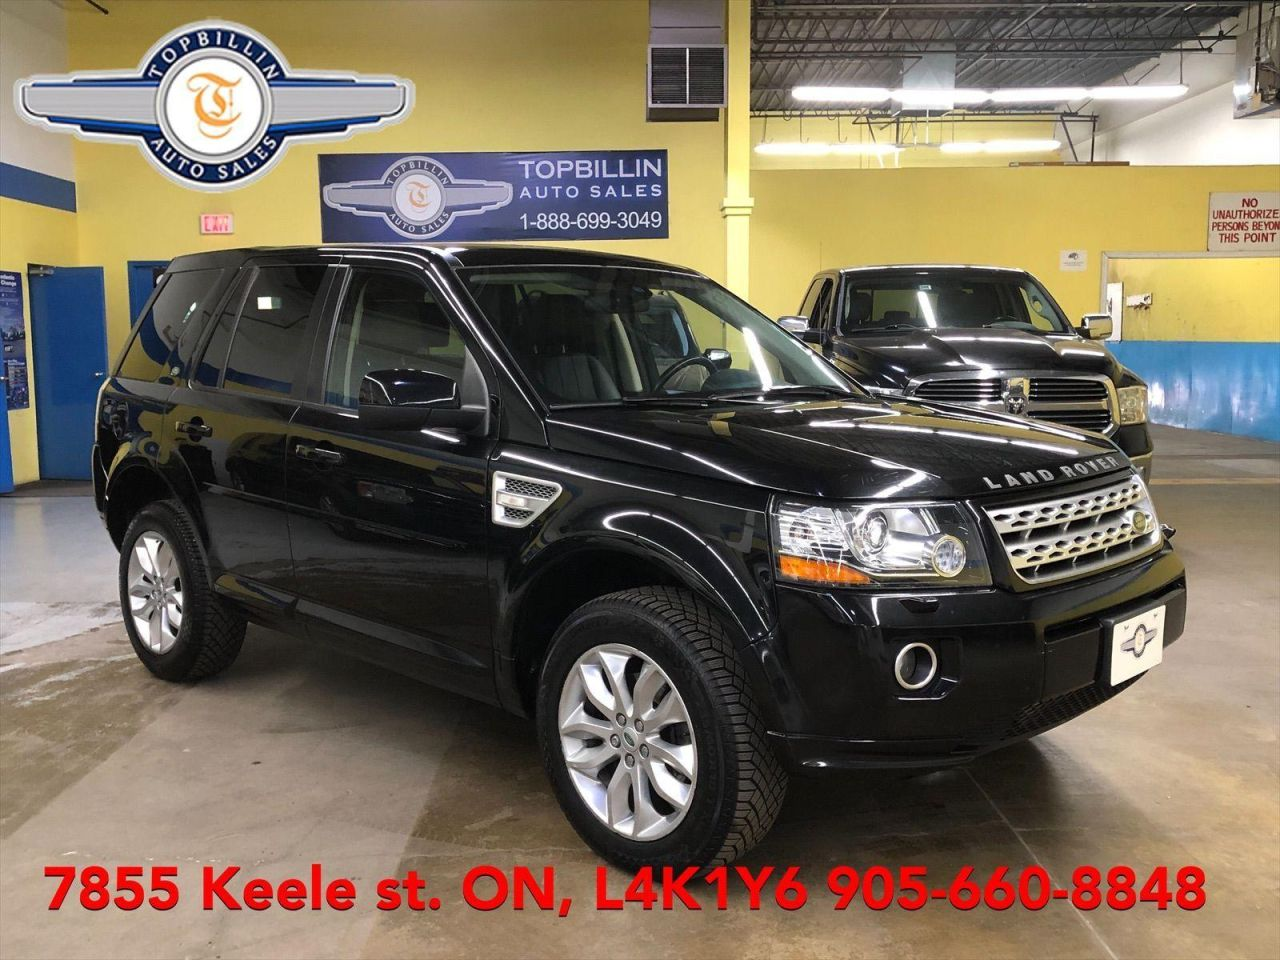 2014 Land Rover LR2 4WD Only 92K, Panoramic Roof, Fully Loaded